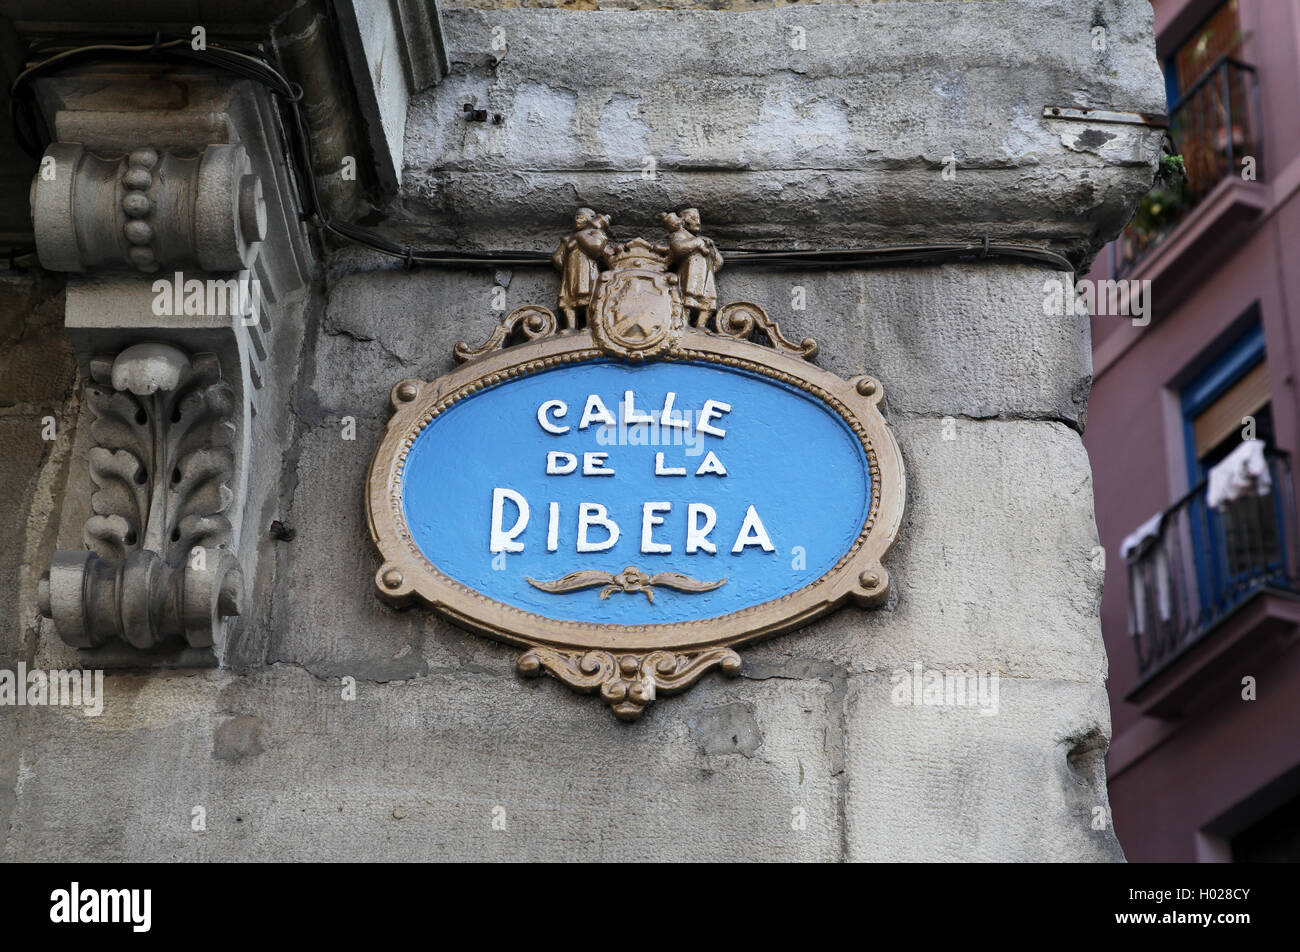 Street sign Calle de la Ribera in the old town Casco Viejo of Bilbao Basque Country Spain Europe - Stock Image